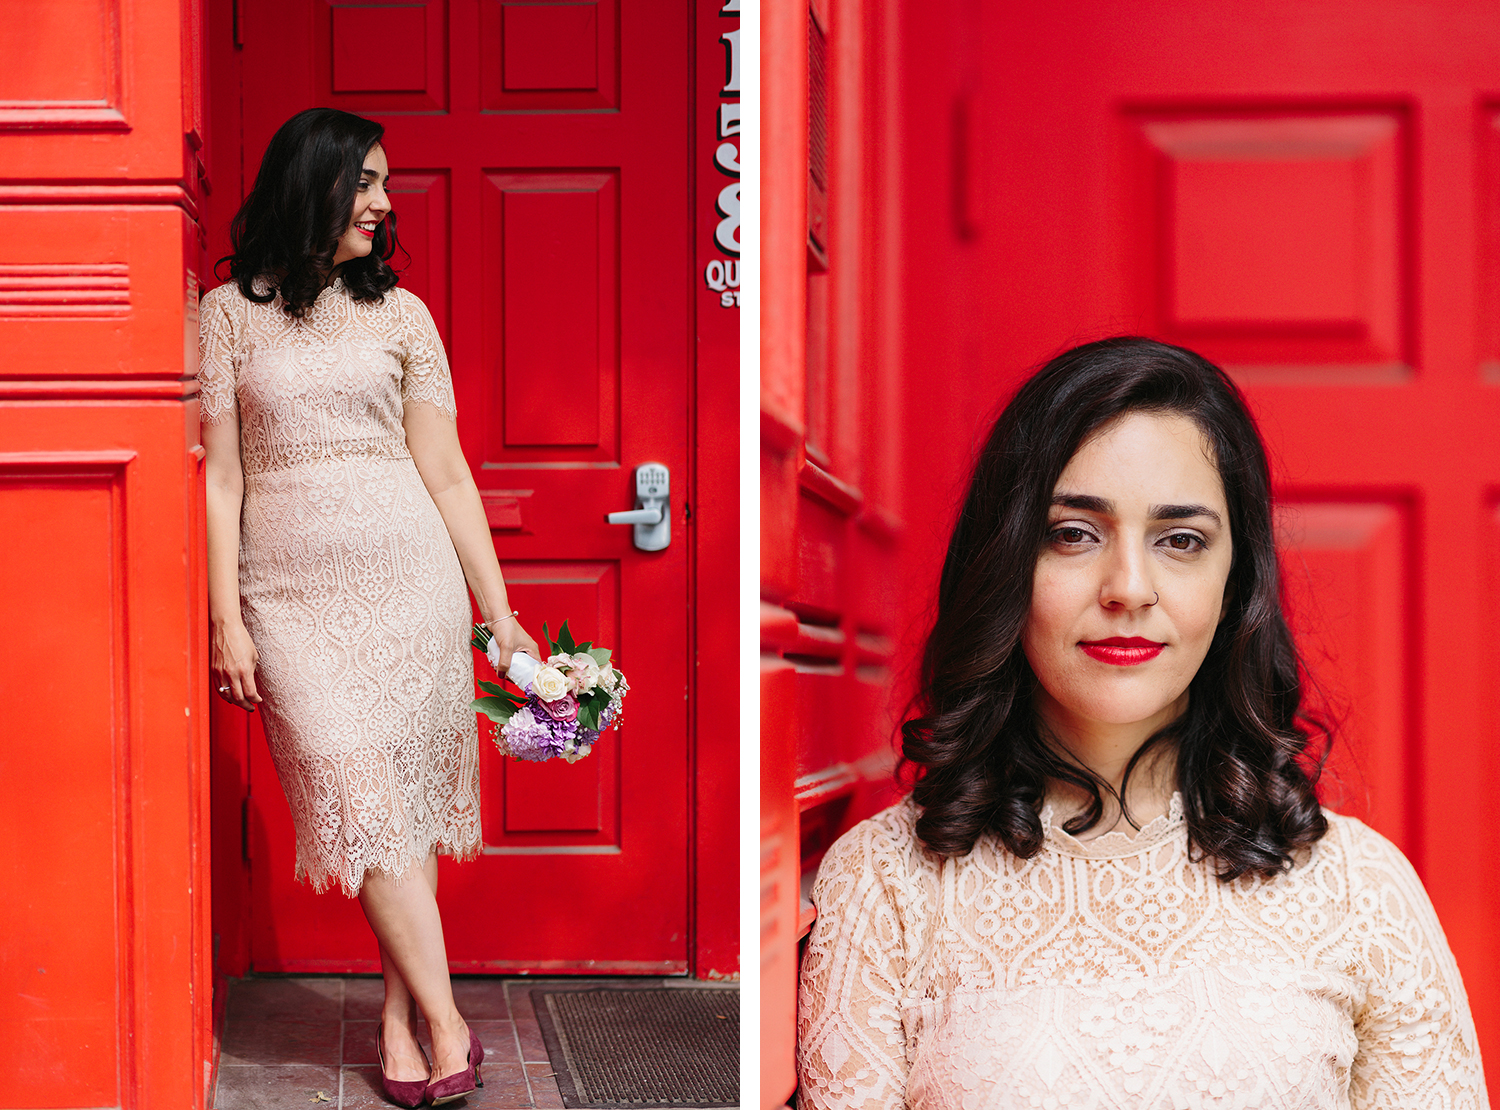 19-Wedding-Photographers-in-Toronto-Downtown-Urban-Gladstone-Hotel-Venue-Inspiration-Top-Venues-in-Toronto-boutique-hotel-candid-documentary-brunch-wedding-couples-portraits-bridal-portrait-blush-lace-wedding-dress-red-lips-inspo-vintage.jpg